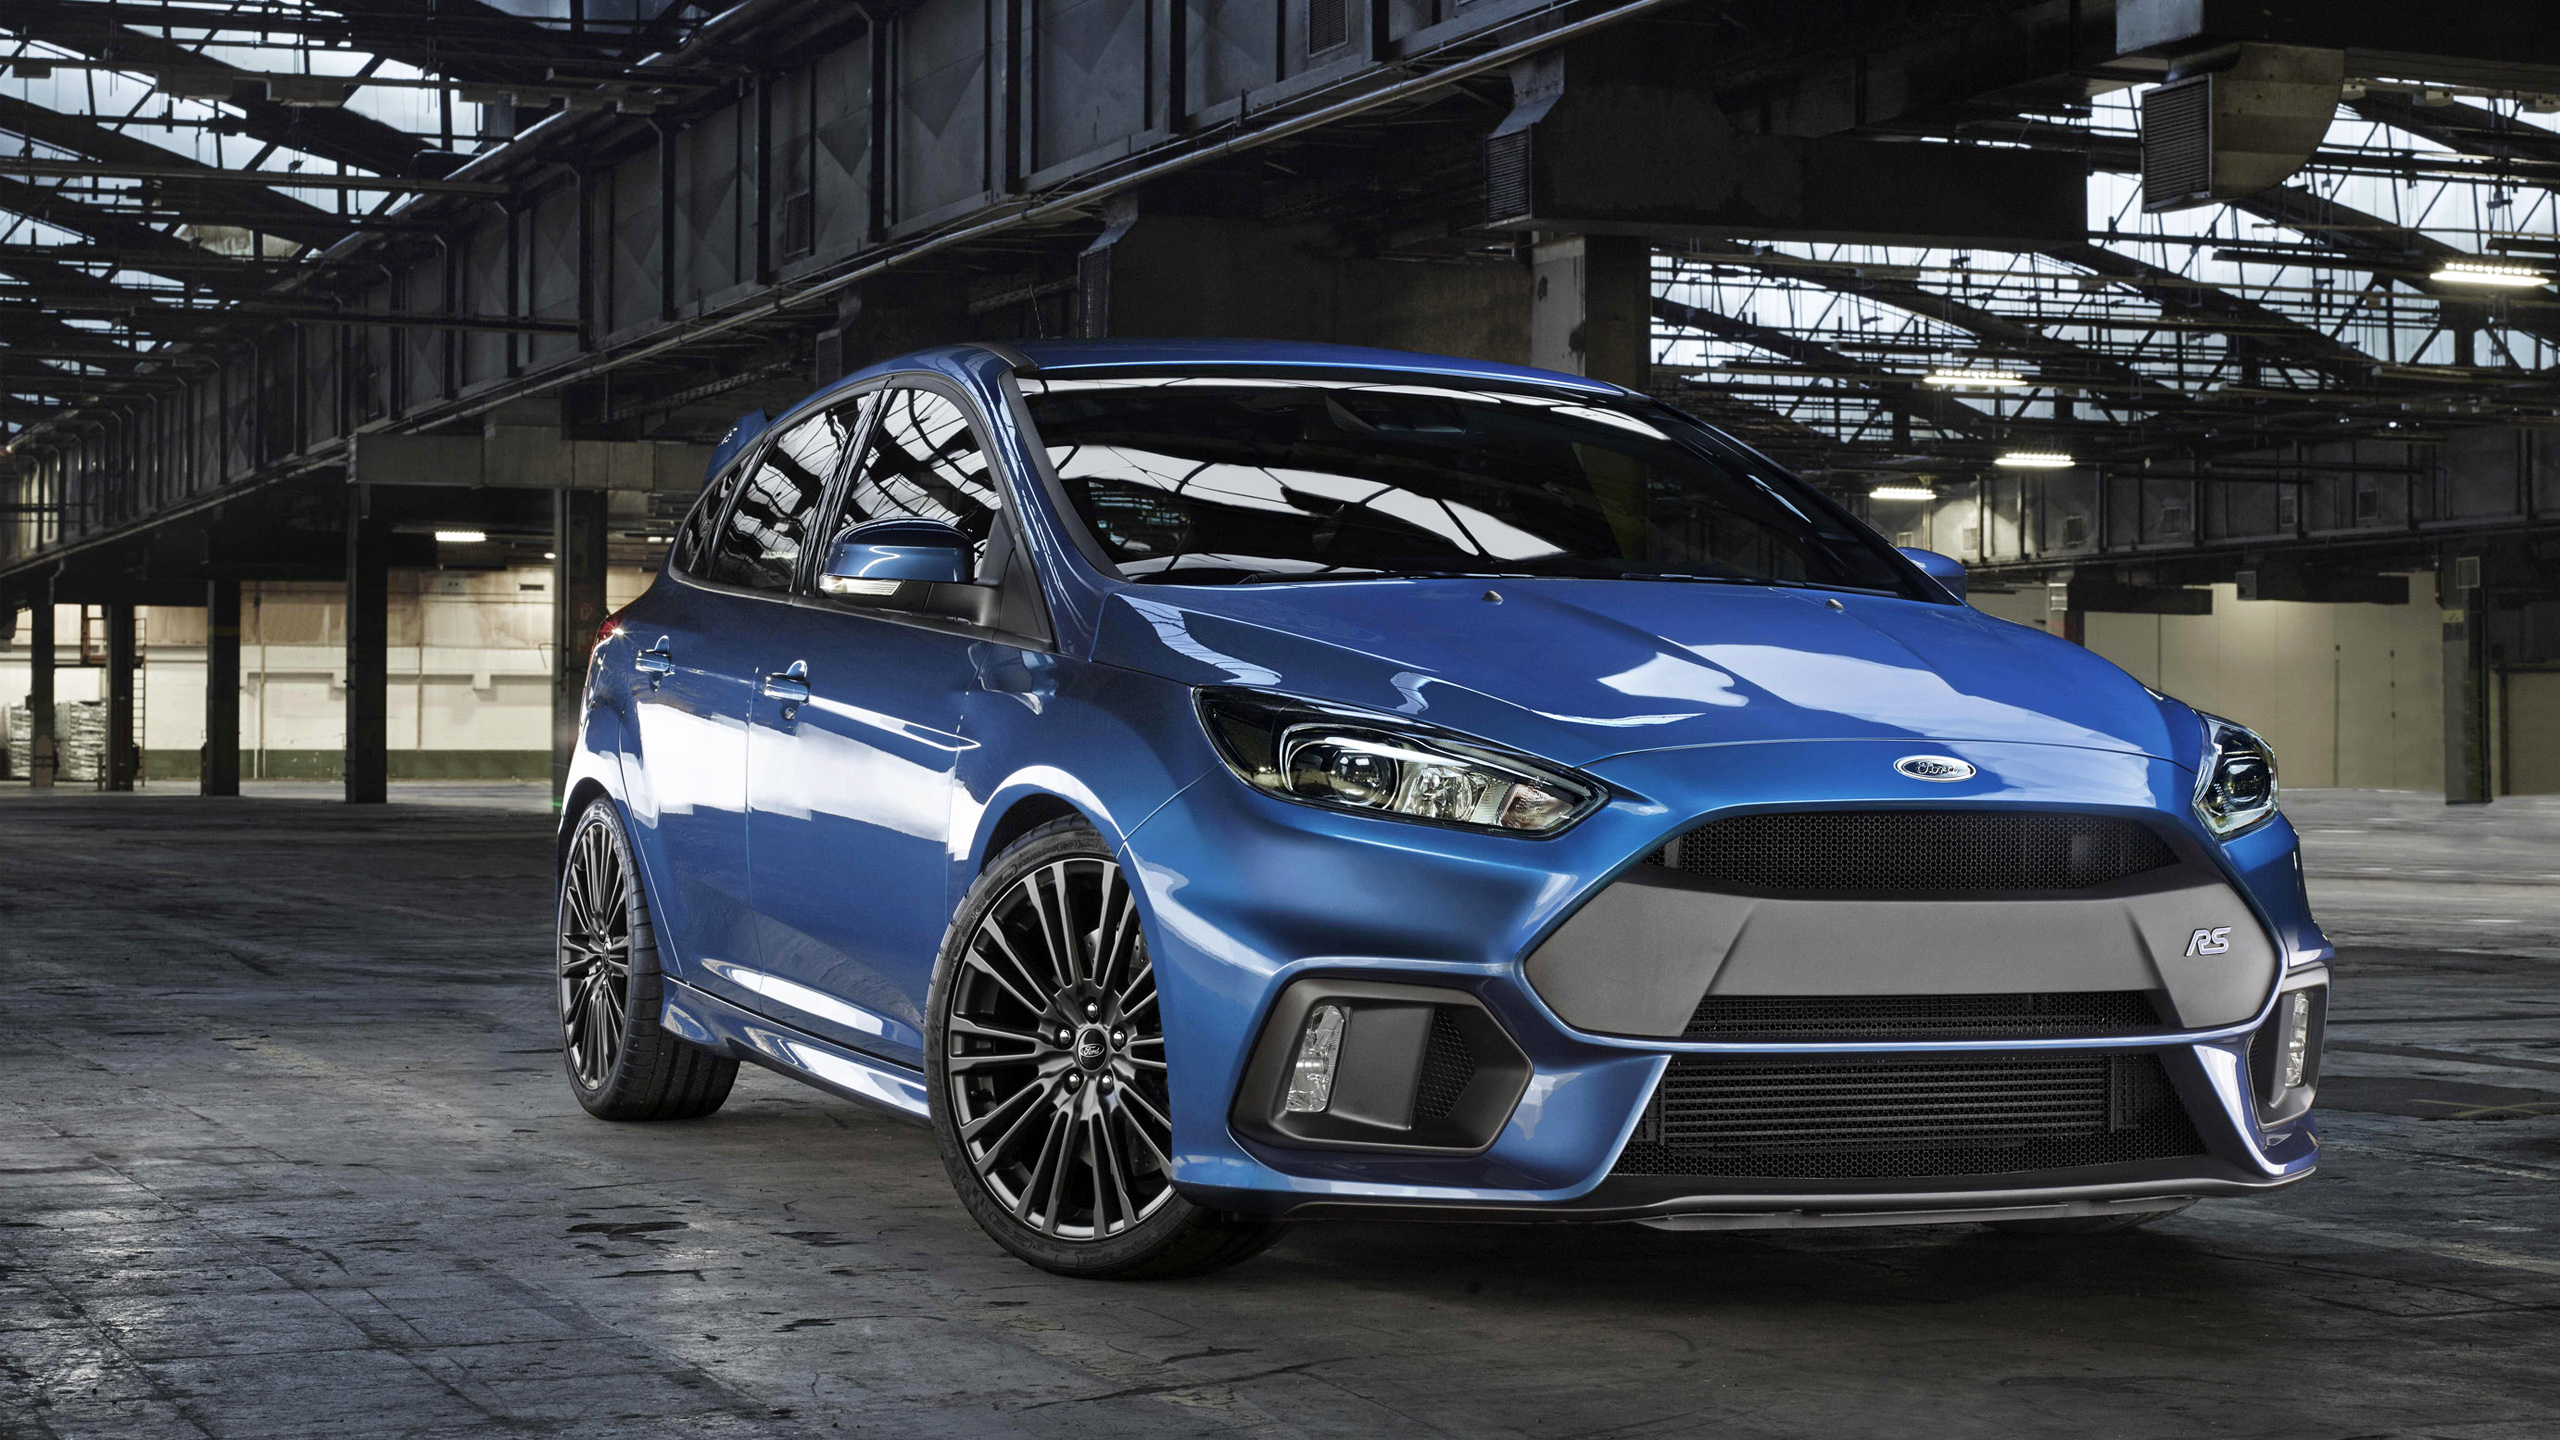 2016 Ford Focus RS Wallpaper HD Car Wallpapers 2560x1440